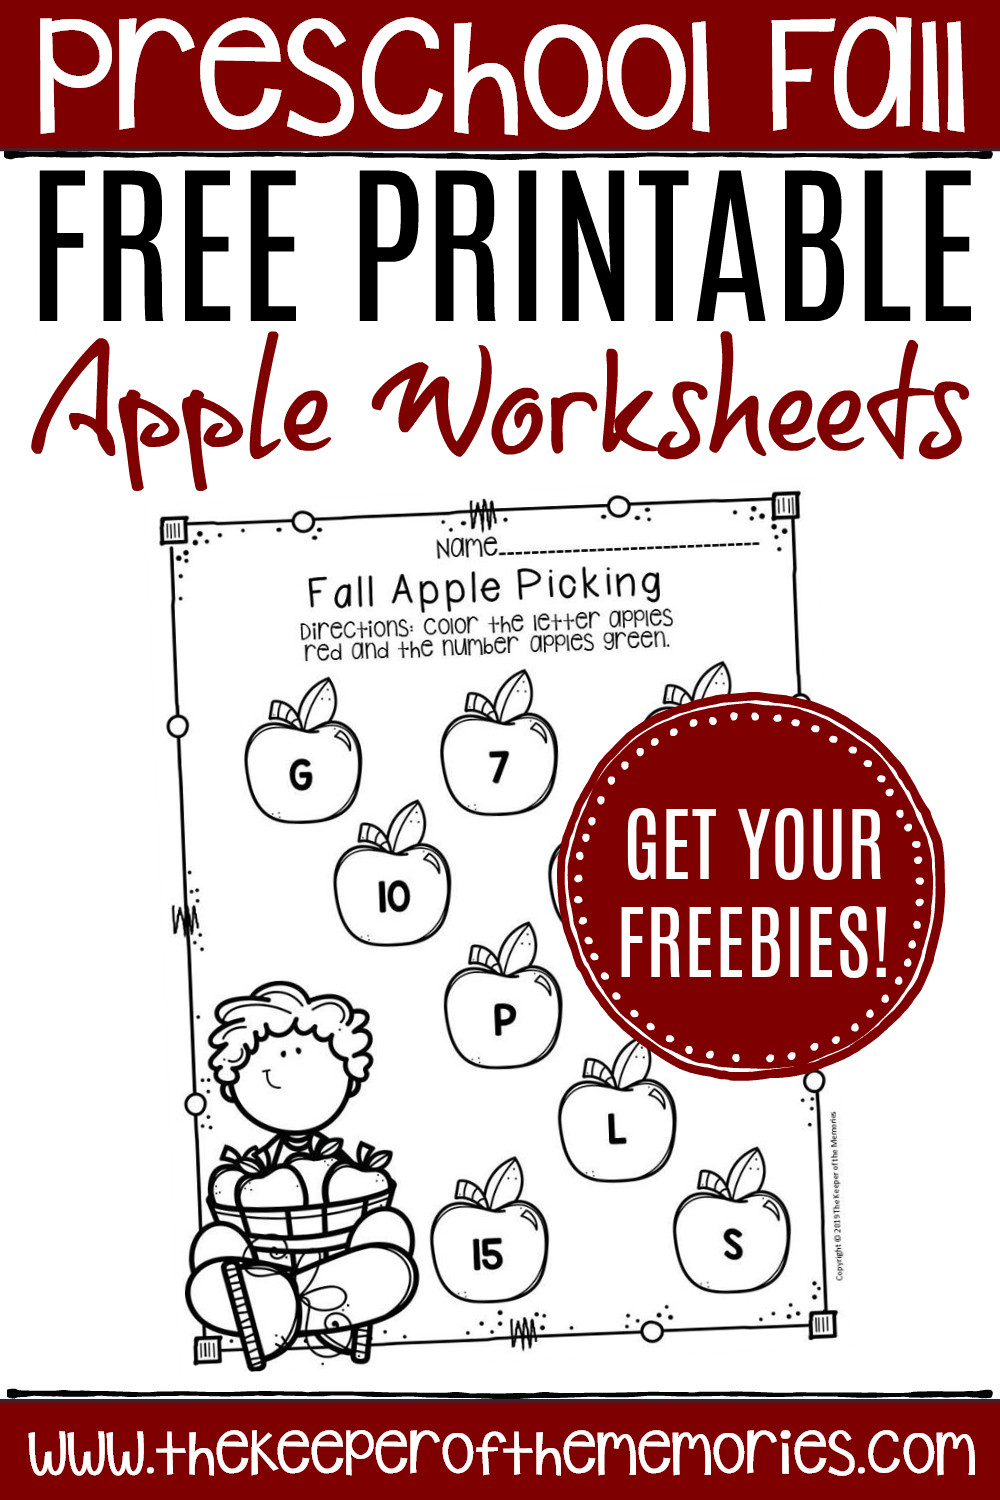 Free Printable Apple Worksheets for Preschoolers